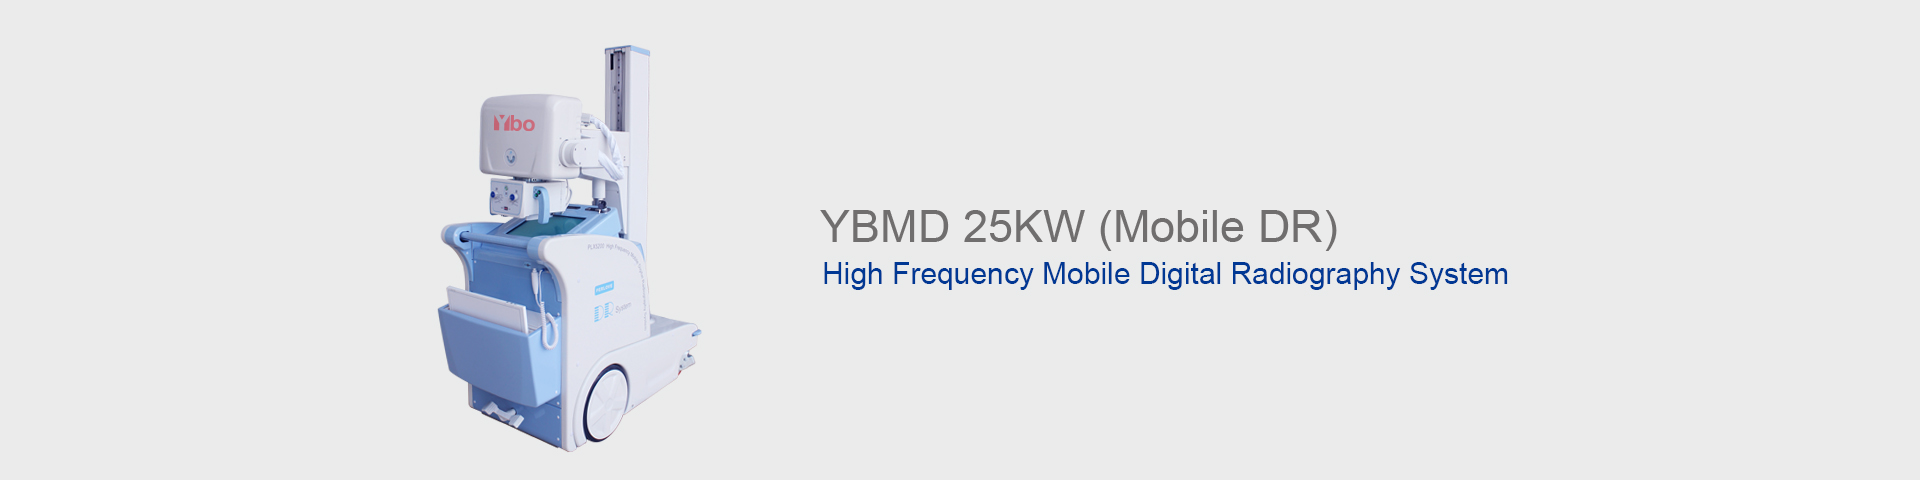 YBMD 25KW Mobile Digital Radiography System